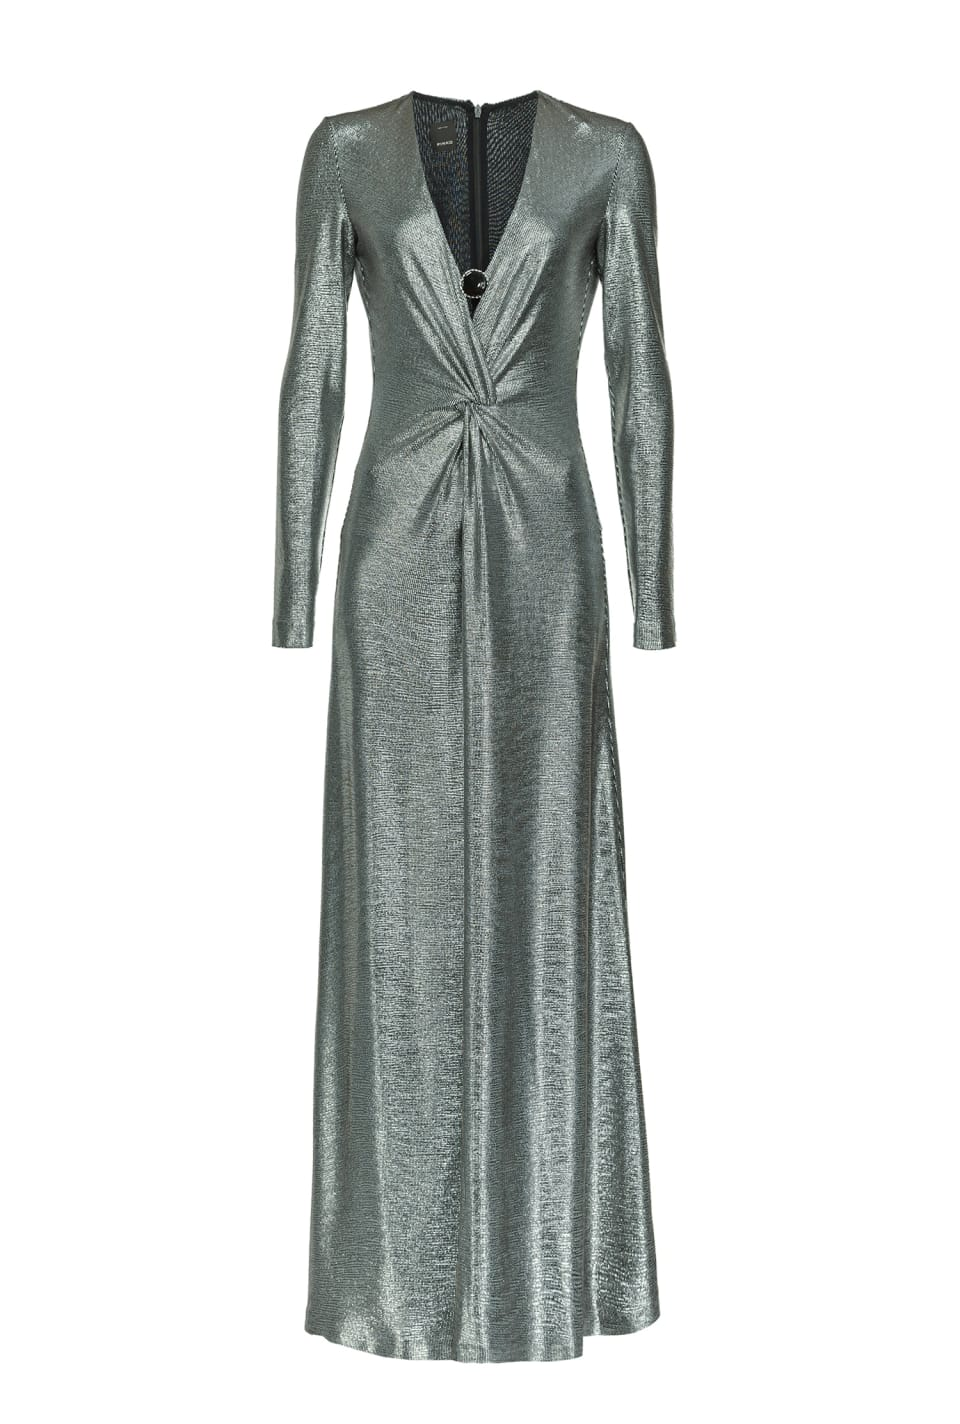 Long dress in laminated jersey - Pinko